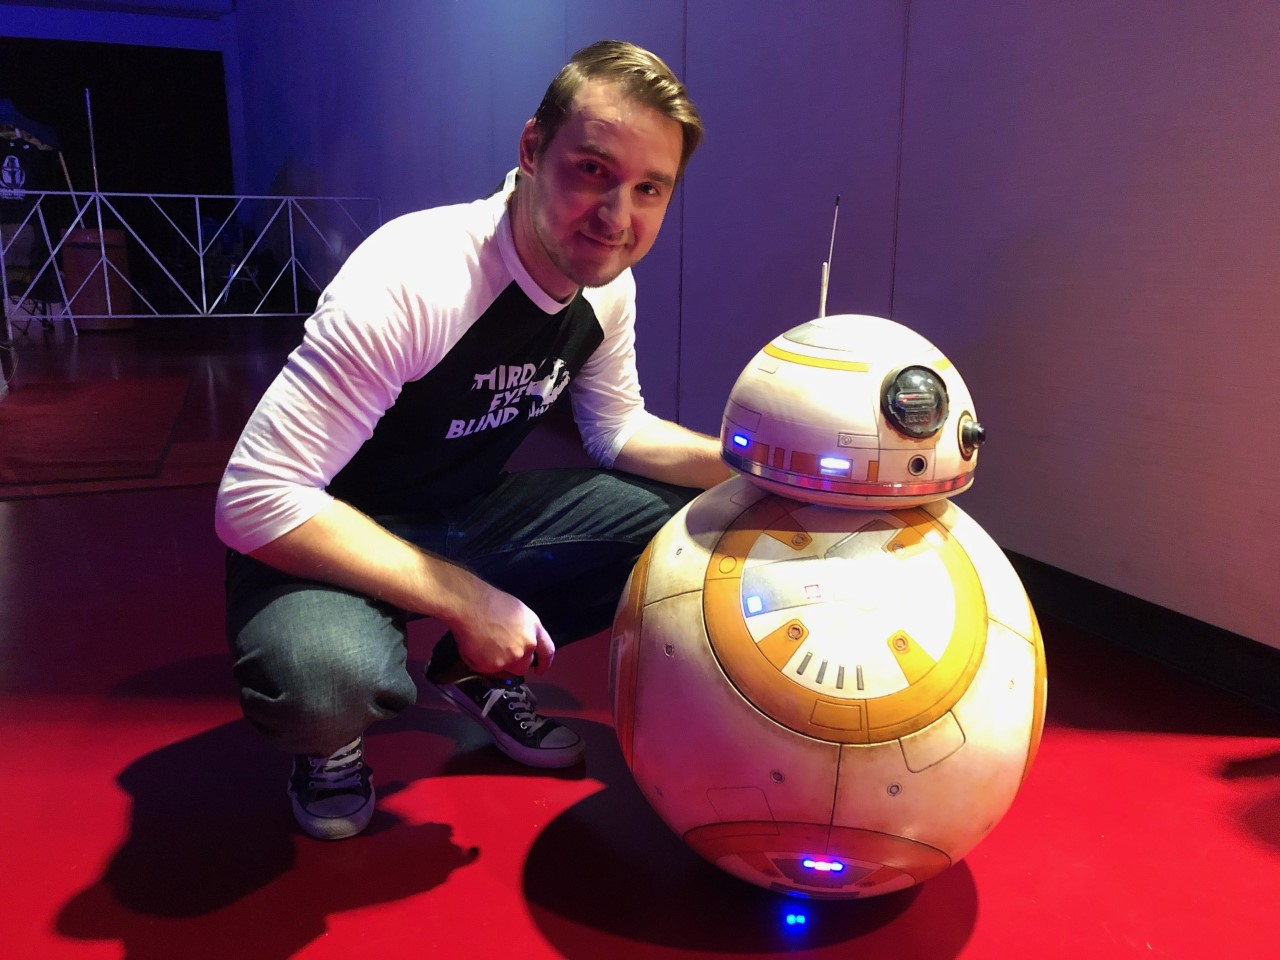 "Phil Carper of Waukesha, Wisconsin used a 3D printer and the help of an online community to build this BB-8 droid from ""Star Wars."" (Maureen McCollum/WPR)"